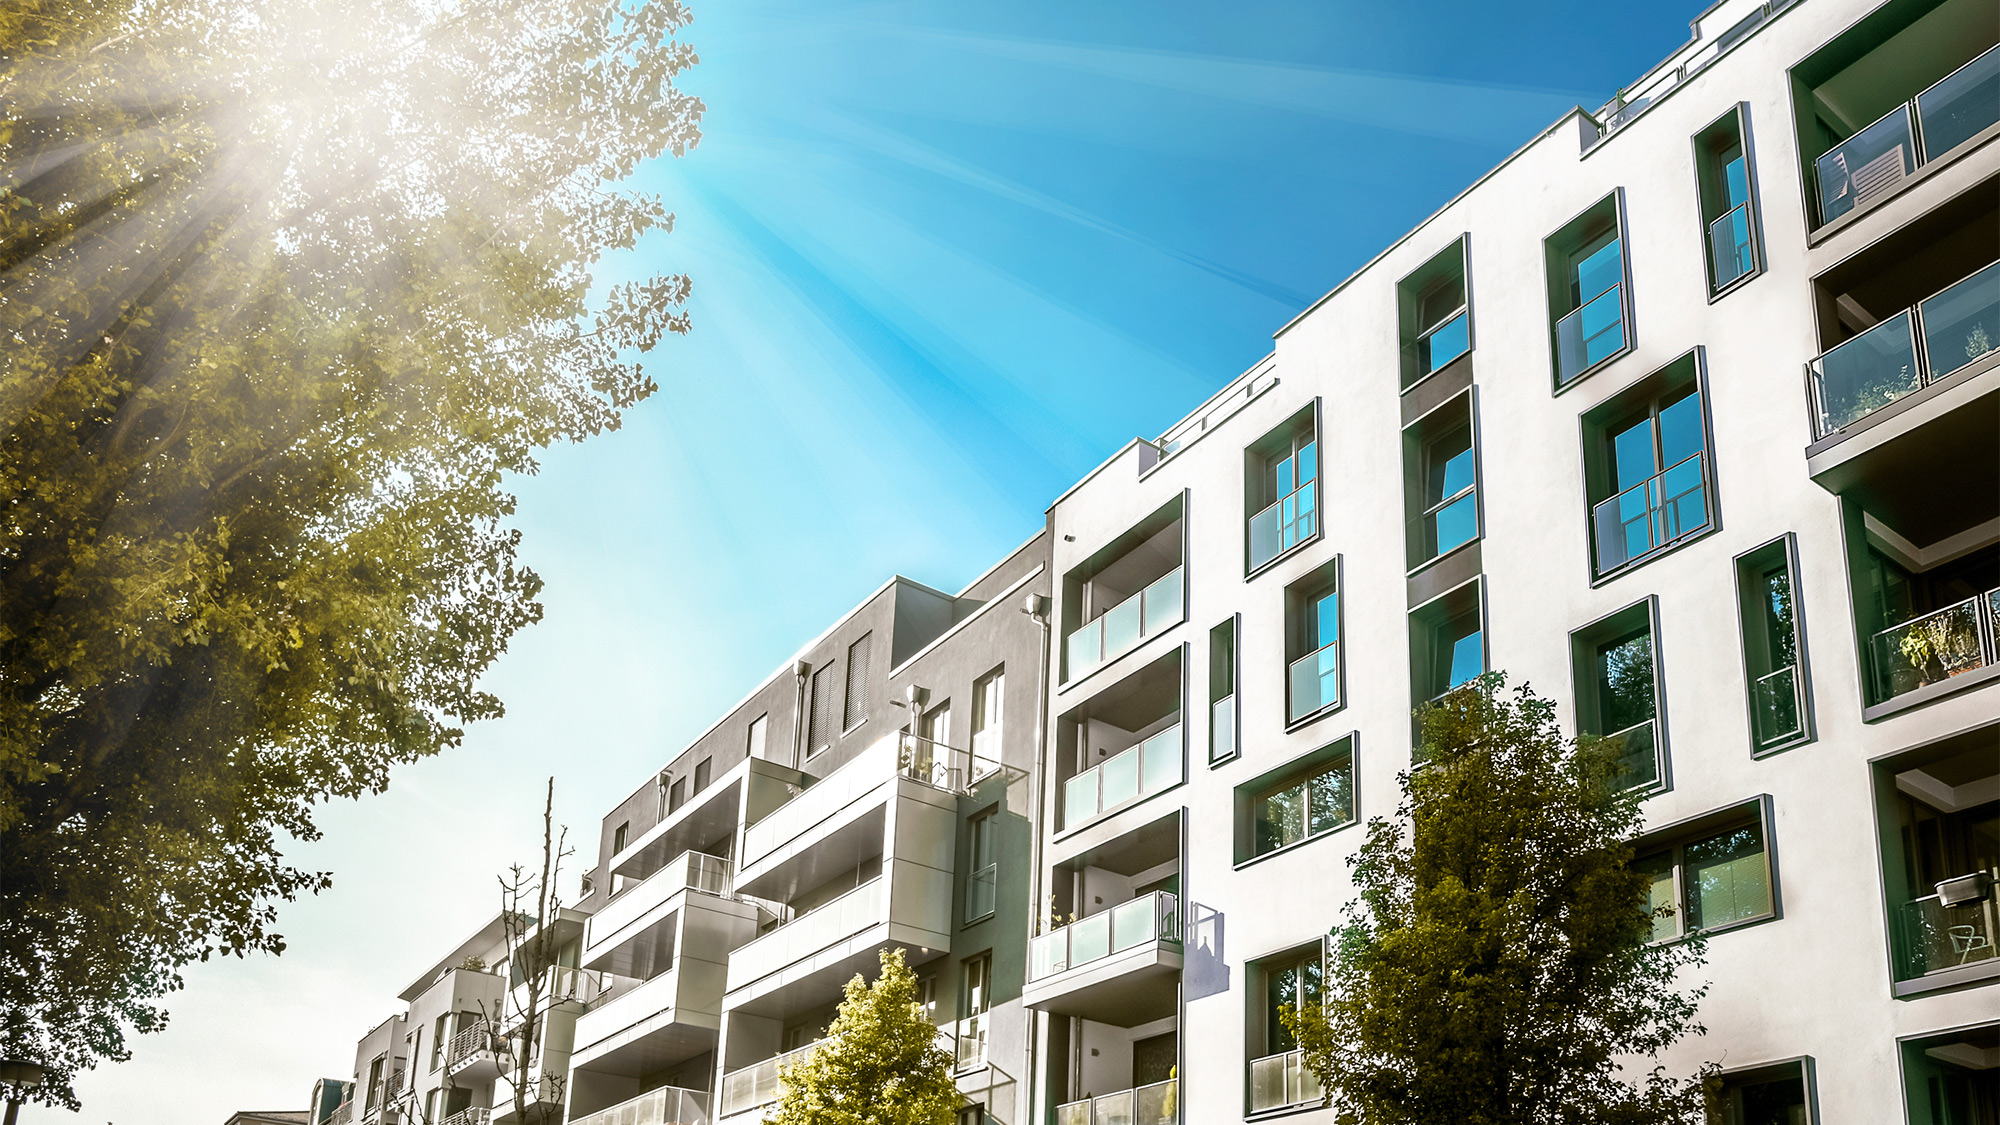 Considerations while hiring a professional condo managing service